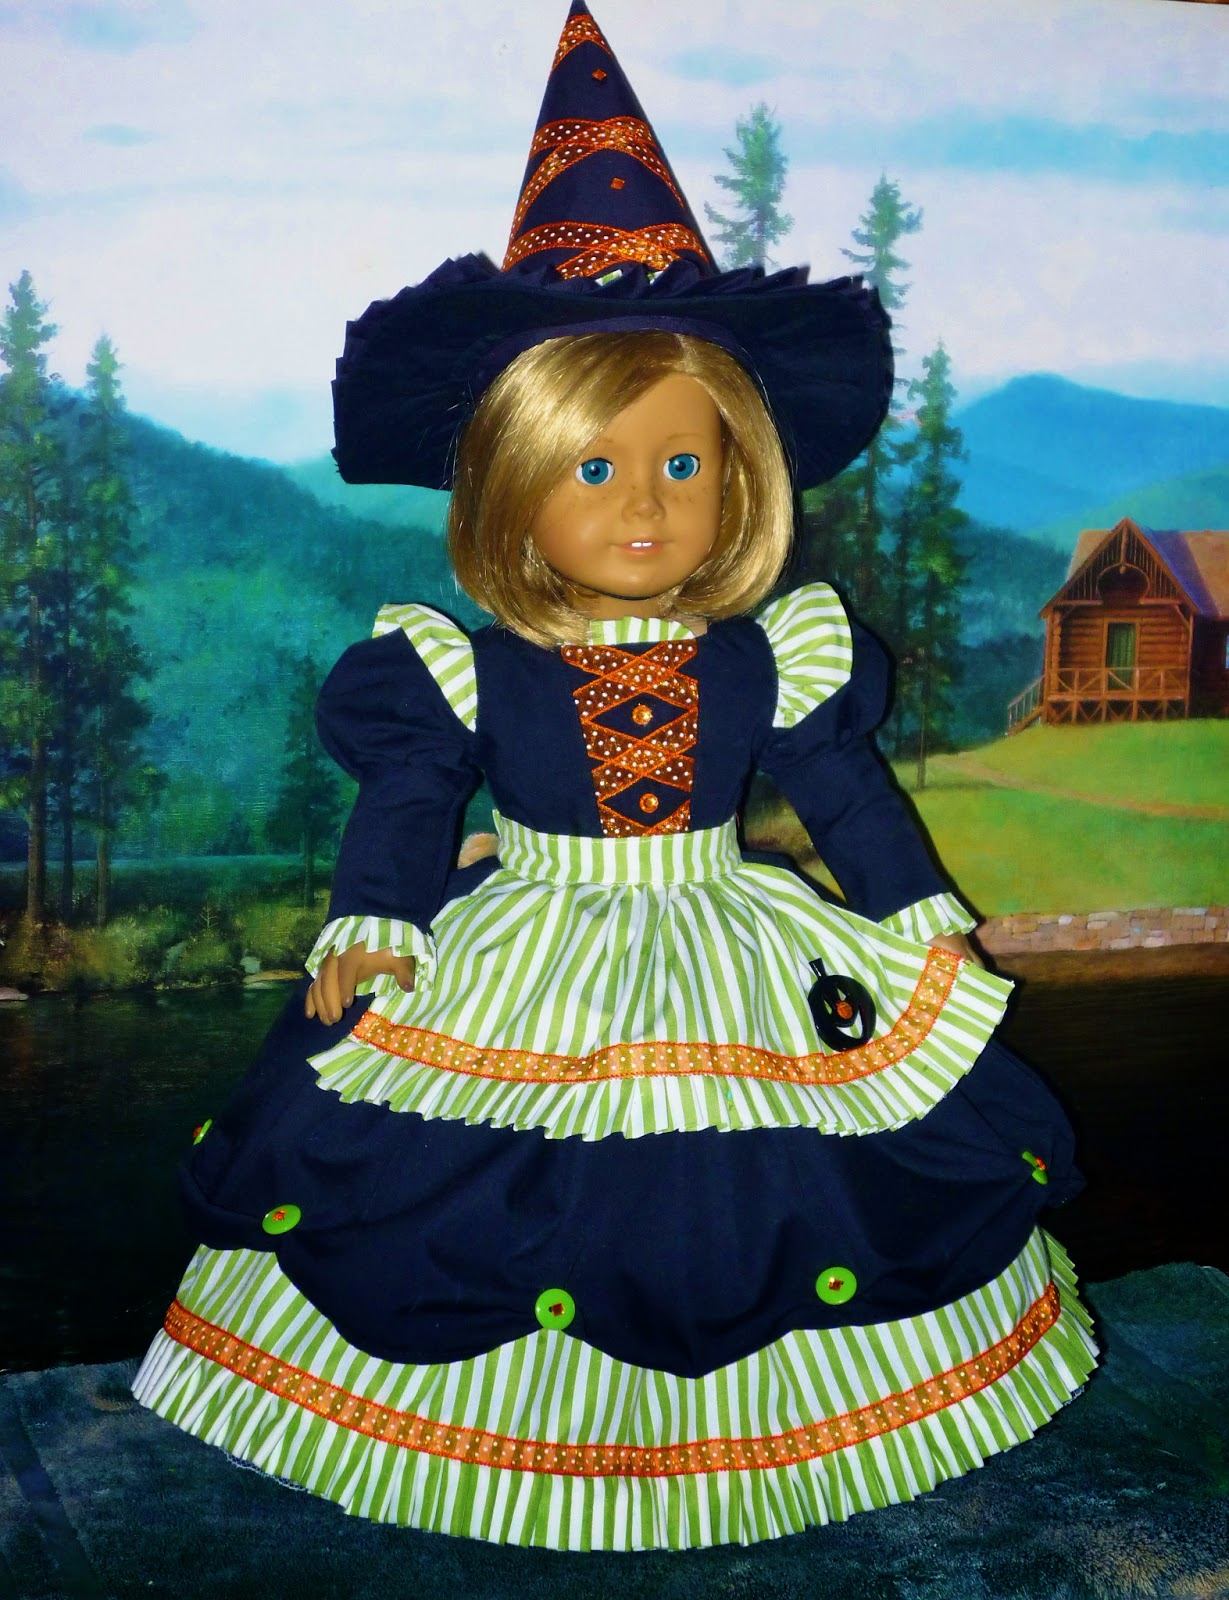 The Stitching Post: American Girl Doll Witch Costumes for Halloween